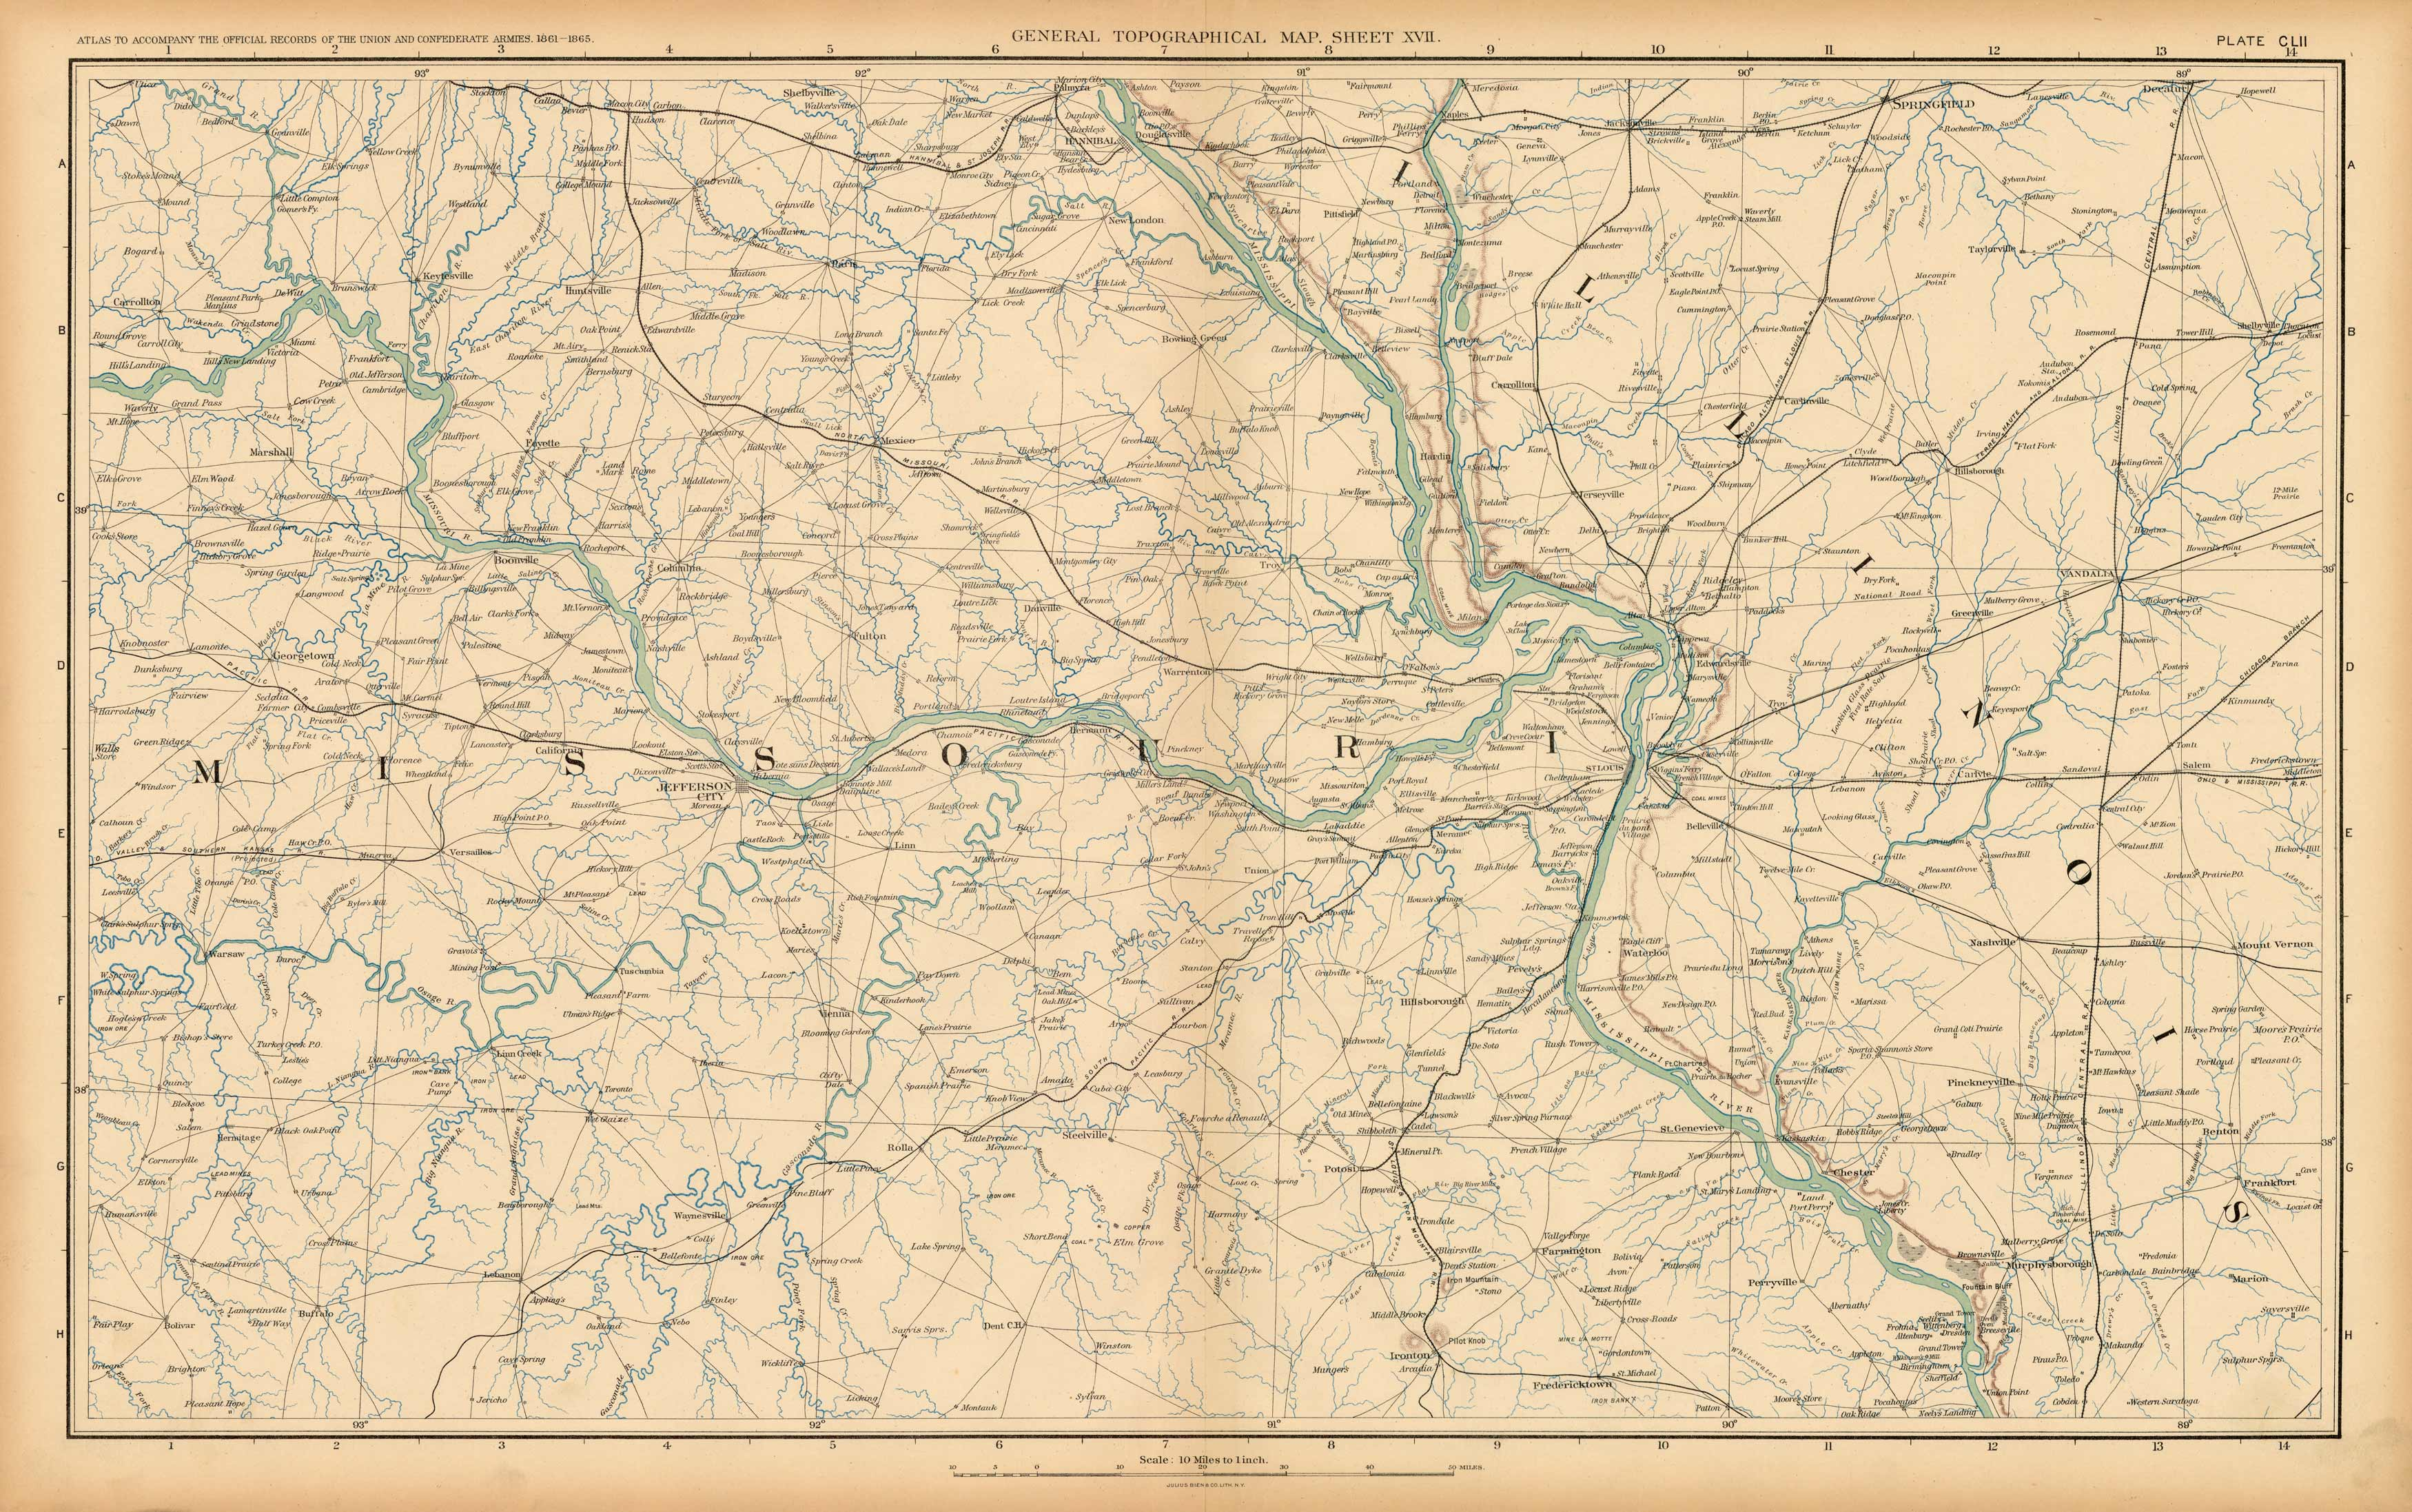 Civil War Atlas; Plate 152; Topographical Map of the Theatre of War; Missouri and Illinois